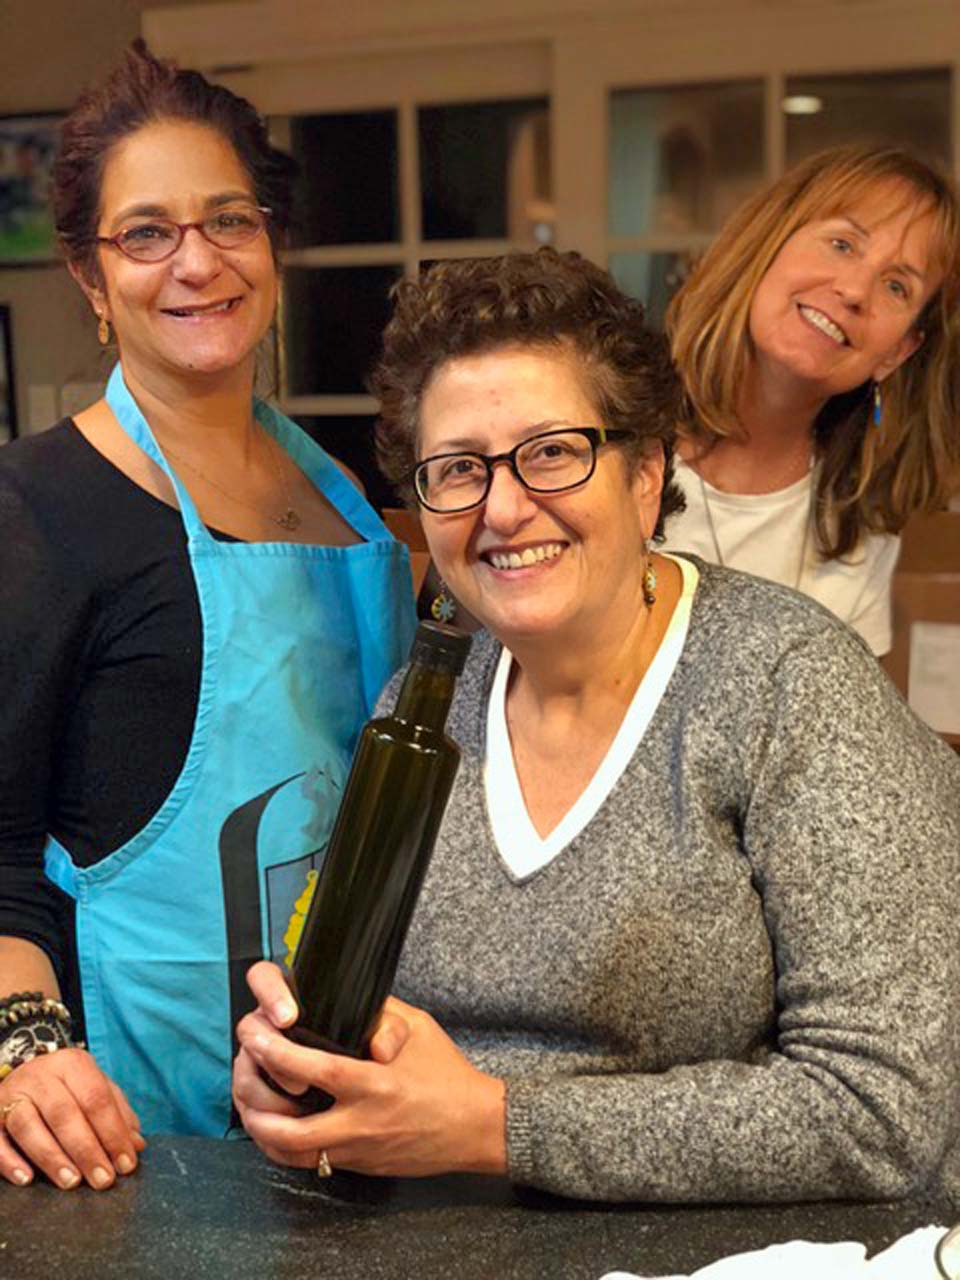 Julie Sawaya, Raidah Ziadeh Hudson and Bridget Mulligan with a filled bottle of olive oil